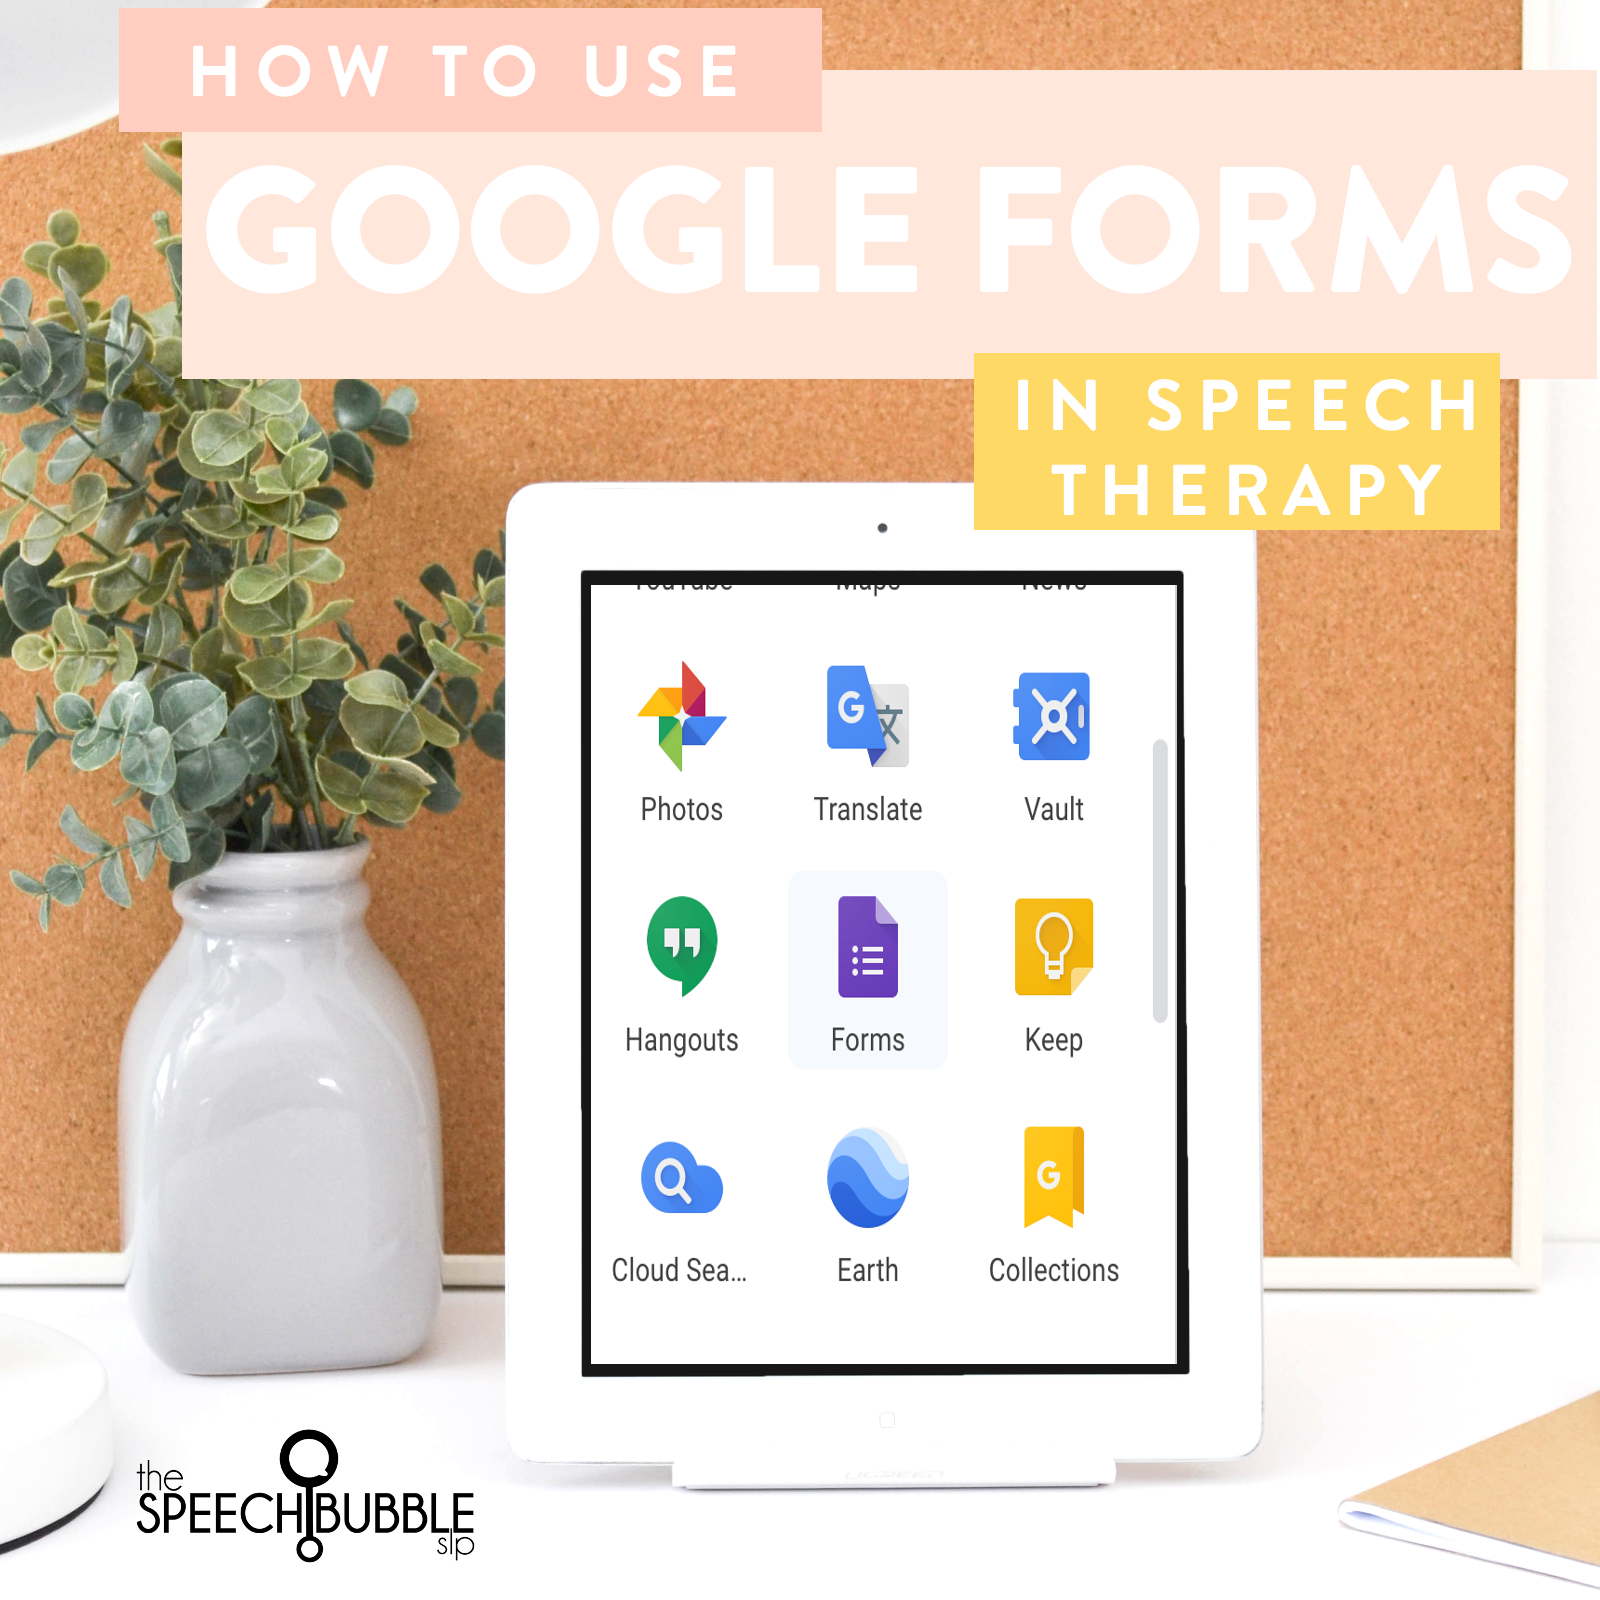 Using Google Forms for Data Collection in Speech Therapy